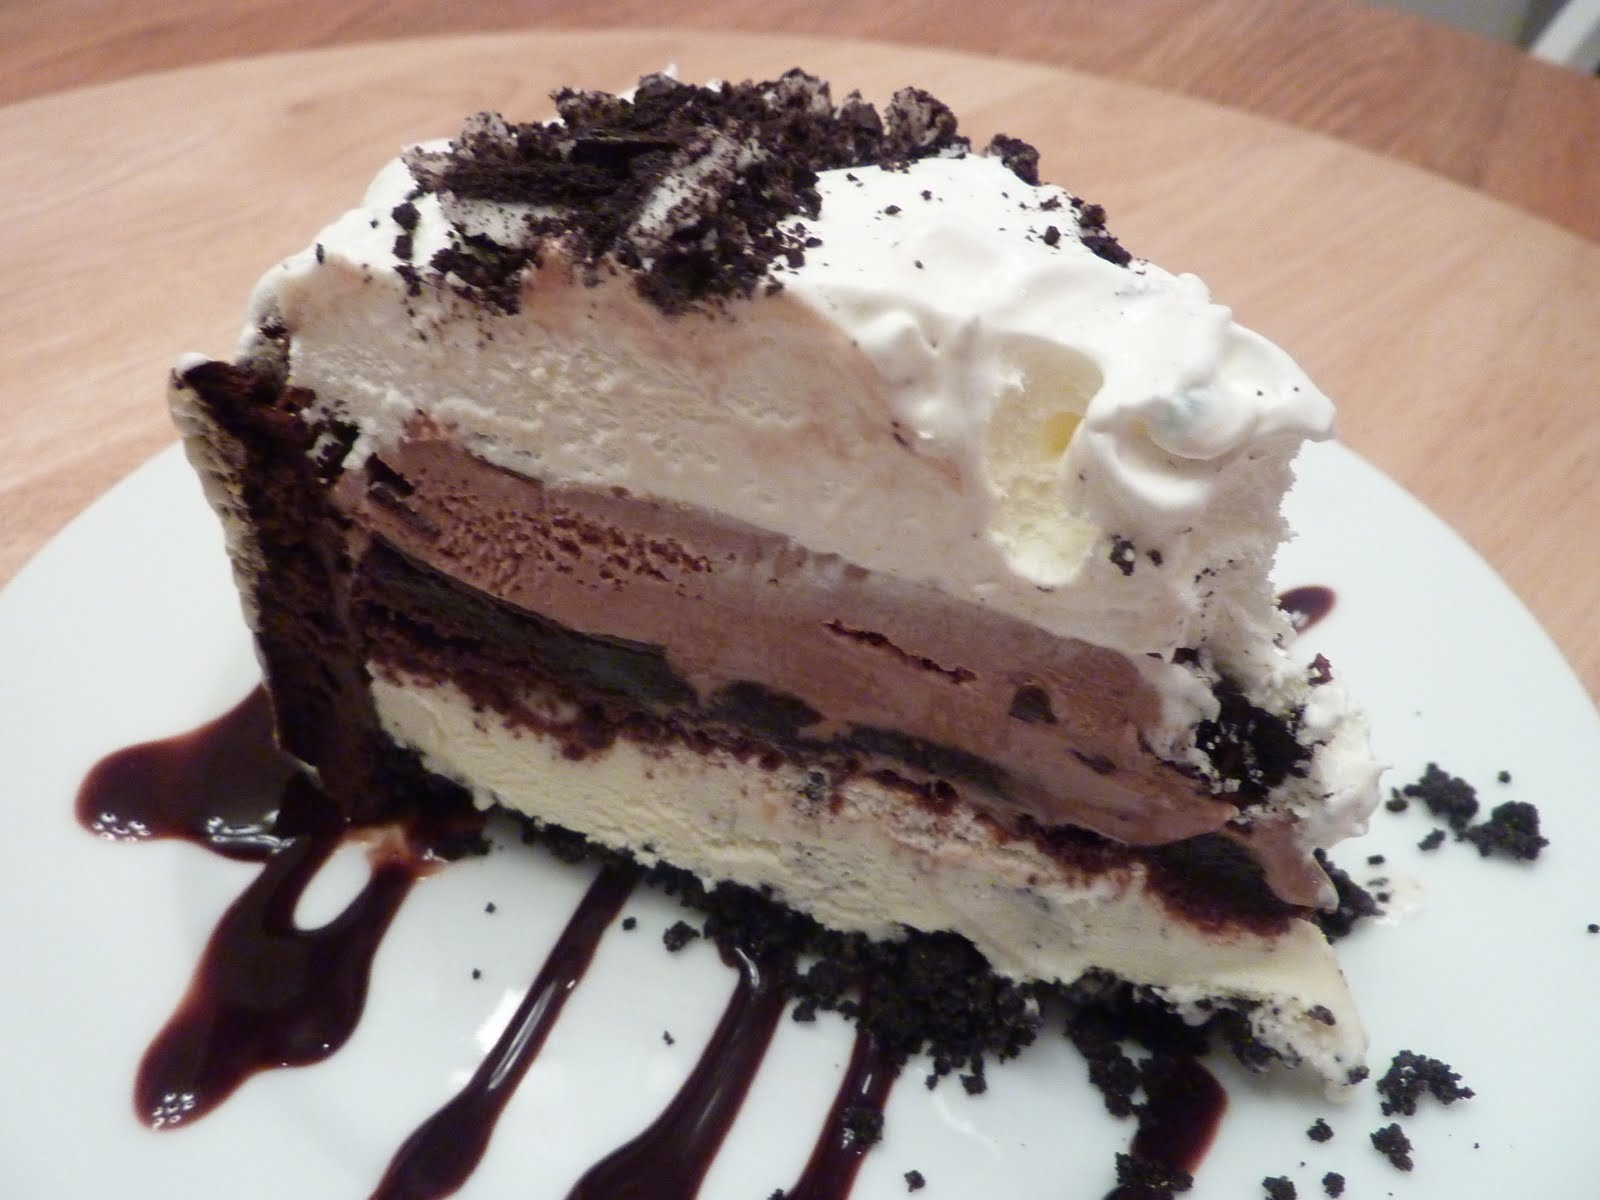 Kimmy's Kitchen: Layered Brownie Ice Cream Cake